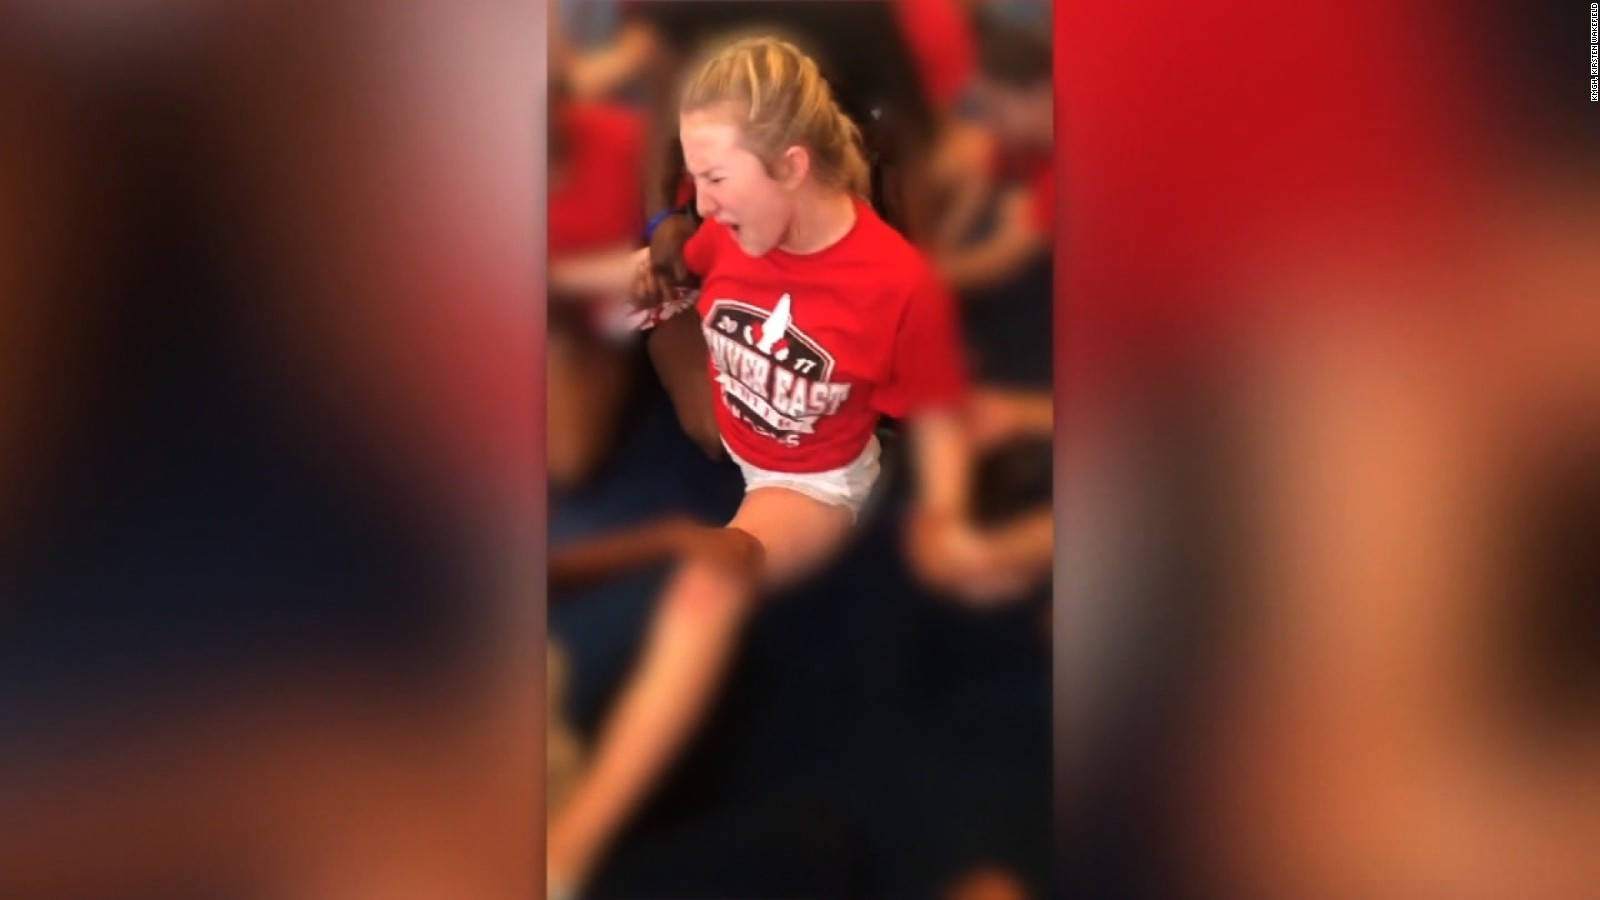 Cheer coach under investigation claims to be Olympic athlete — but he's not  | FOX31 Denver